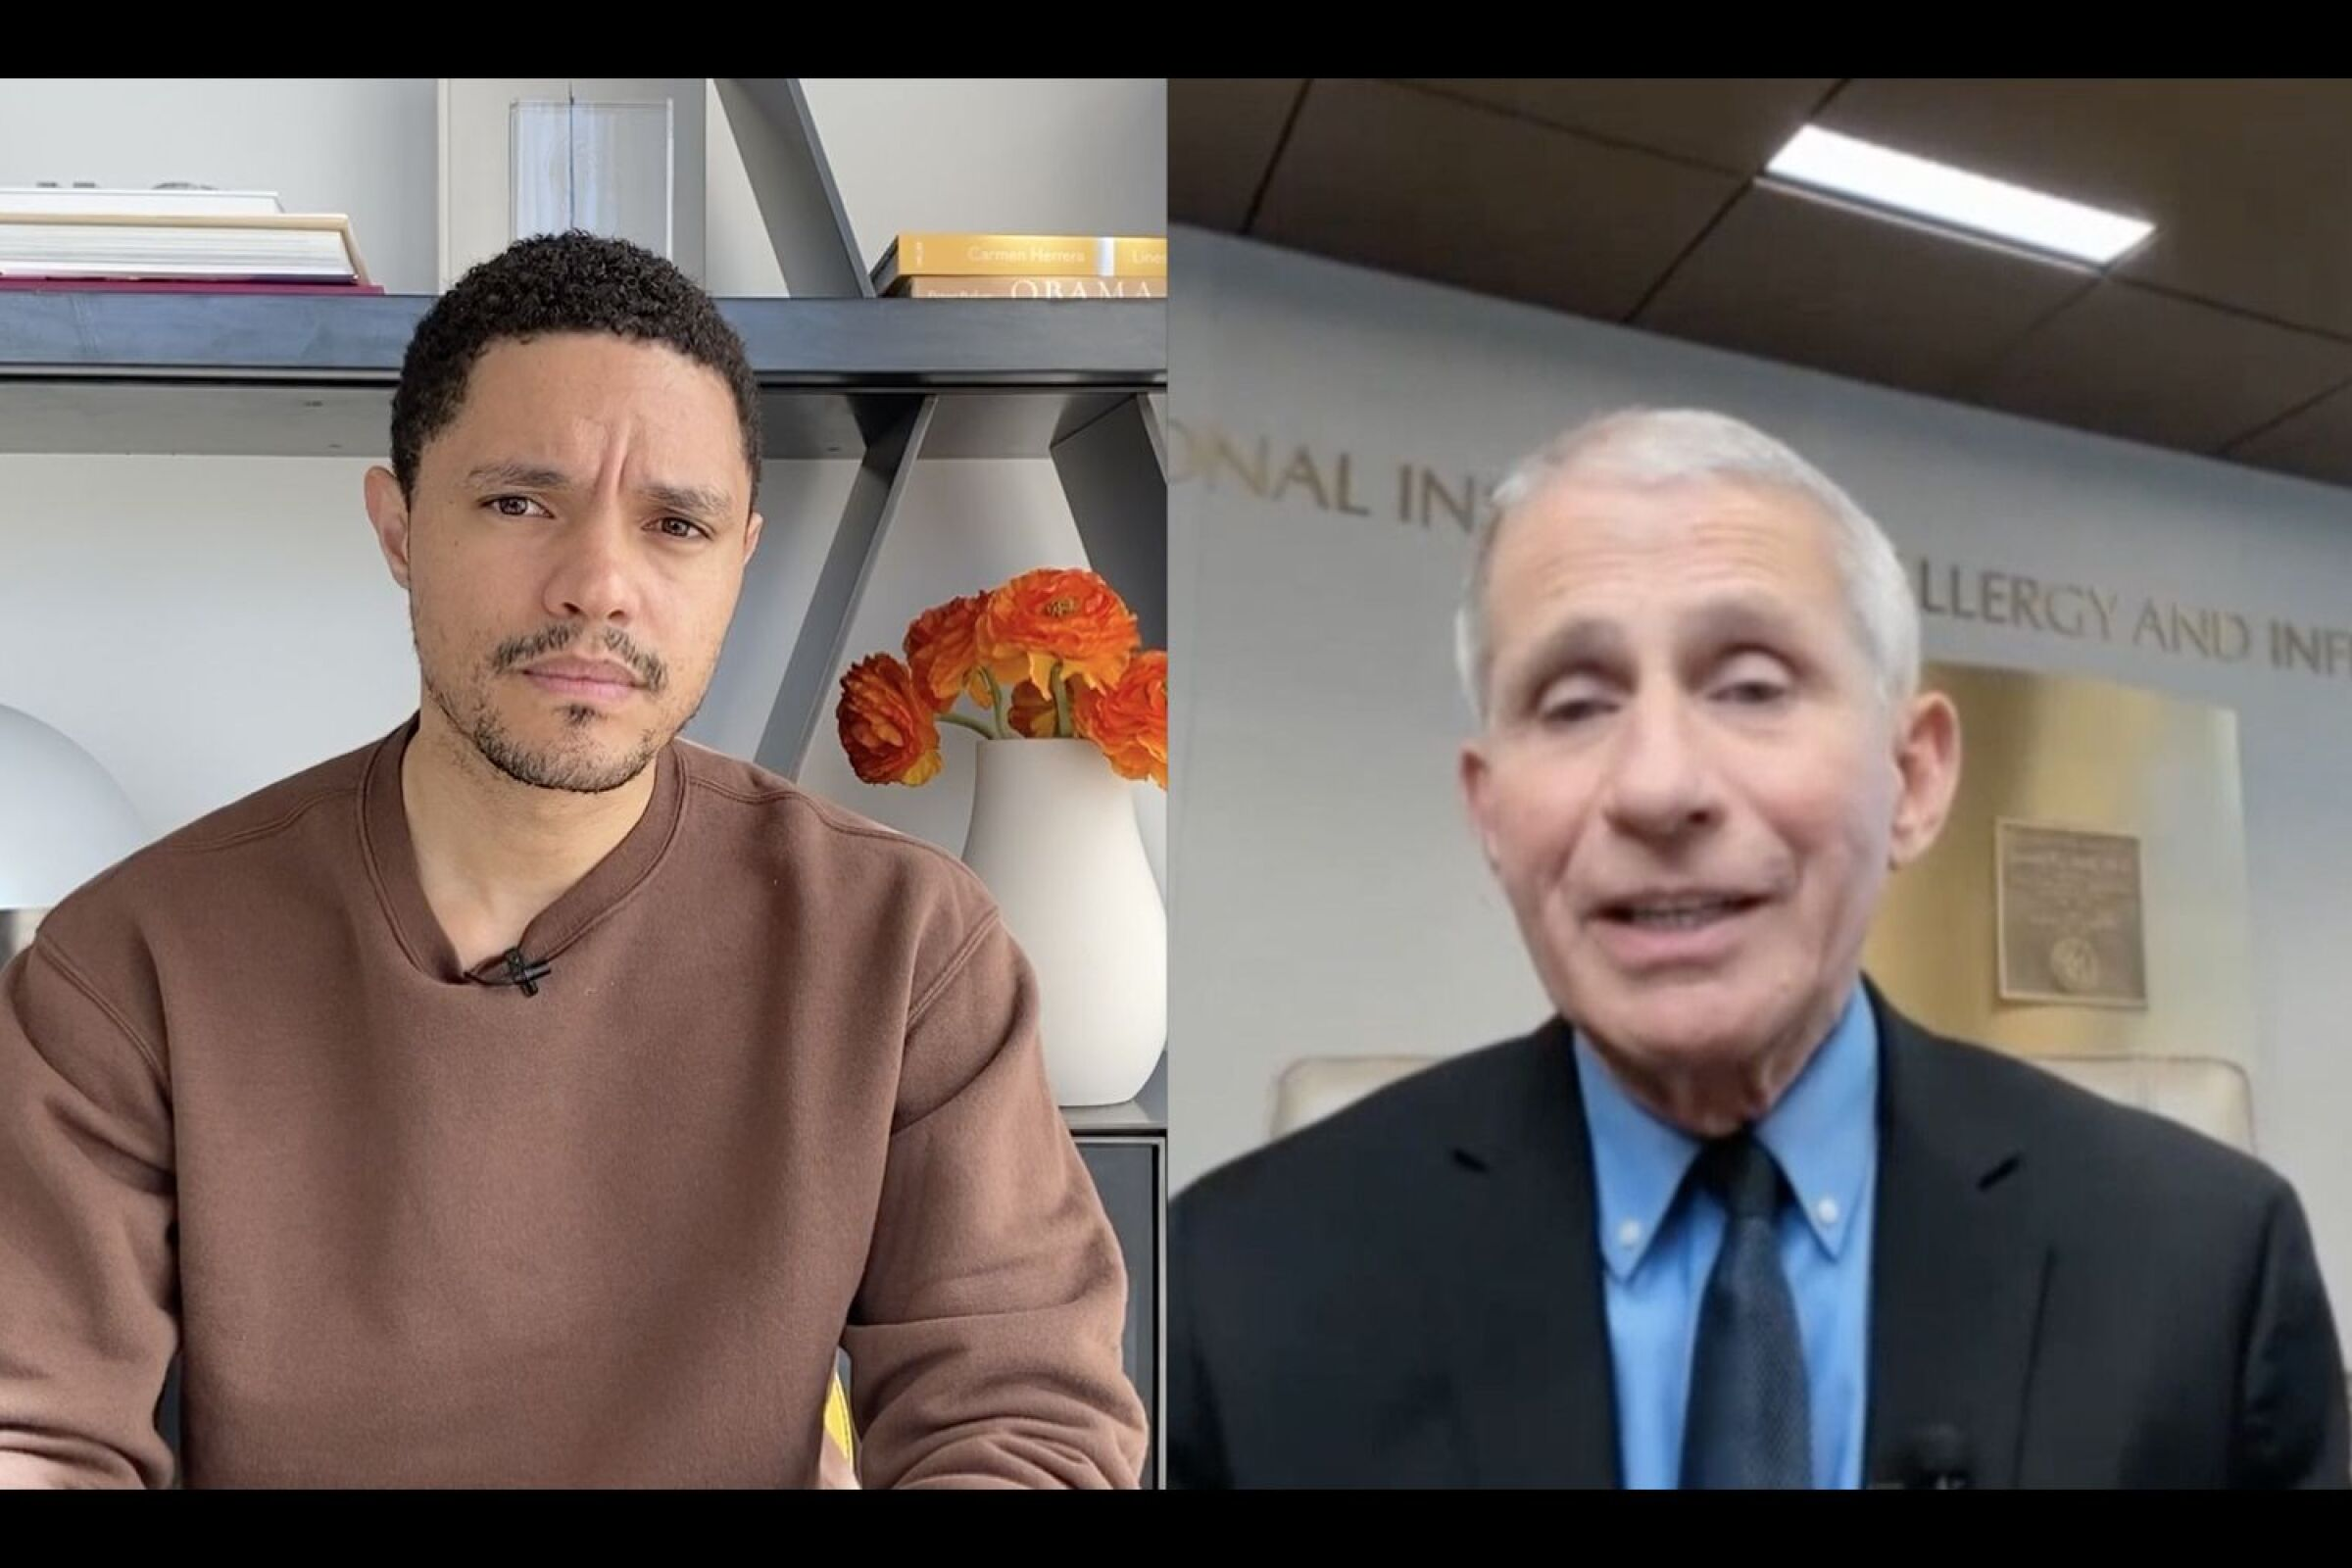 Side-by-side images of Trevor Noah and Anthony Fauci.